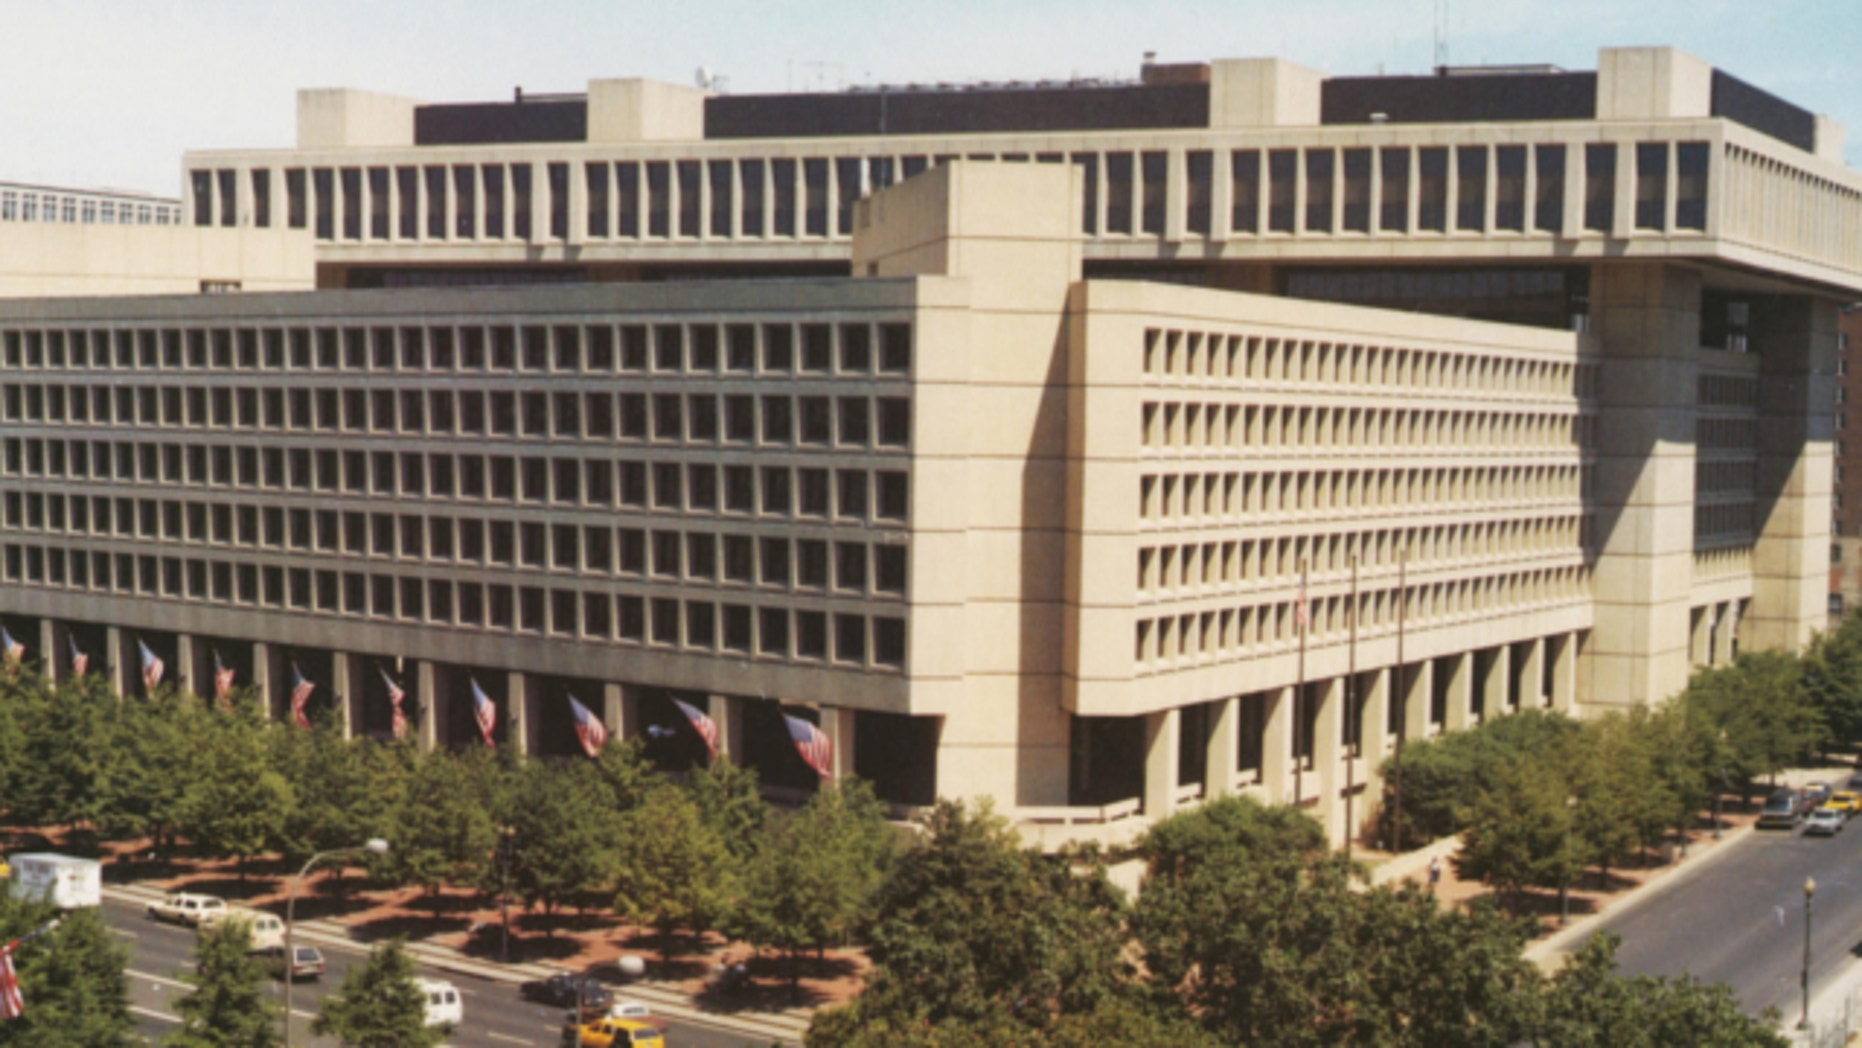 Feb. 10, 2009: The main headquarters of the FBI, the J. Edgar Hoover Building, in Washington, DC.